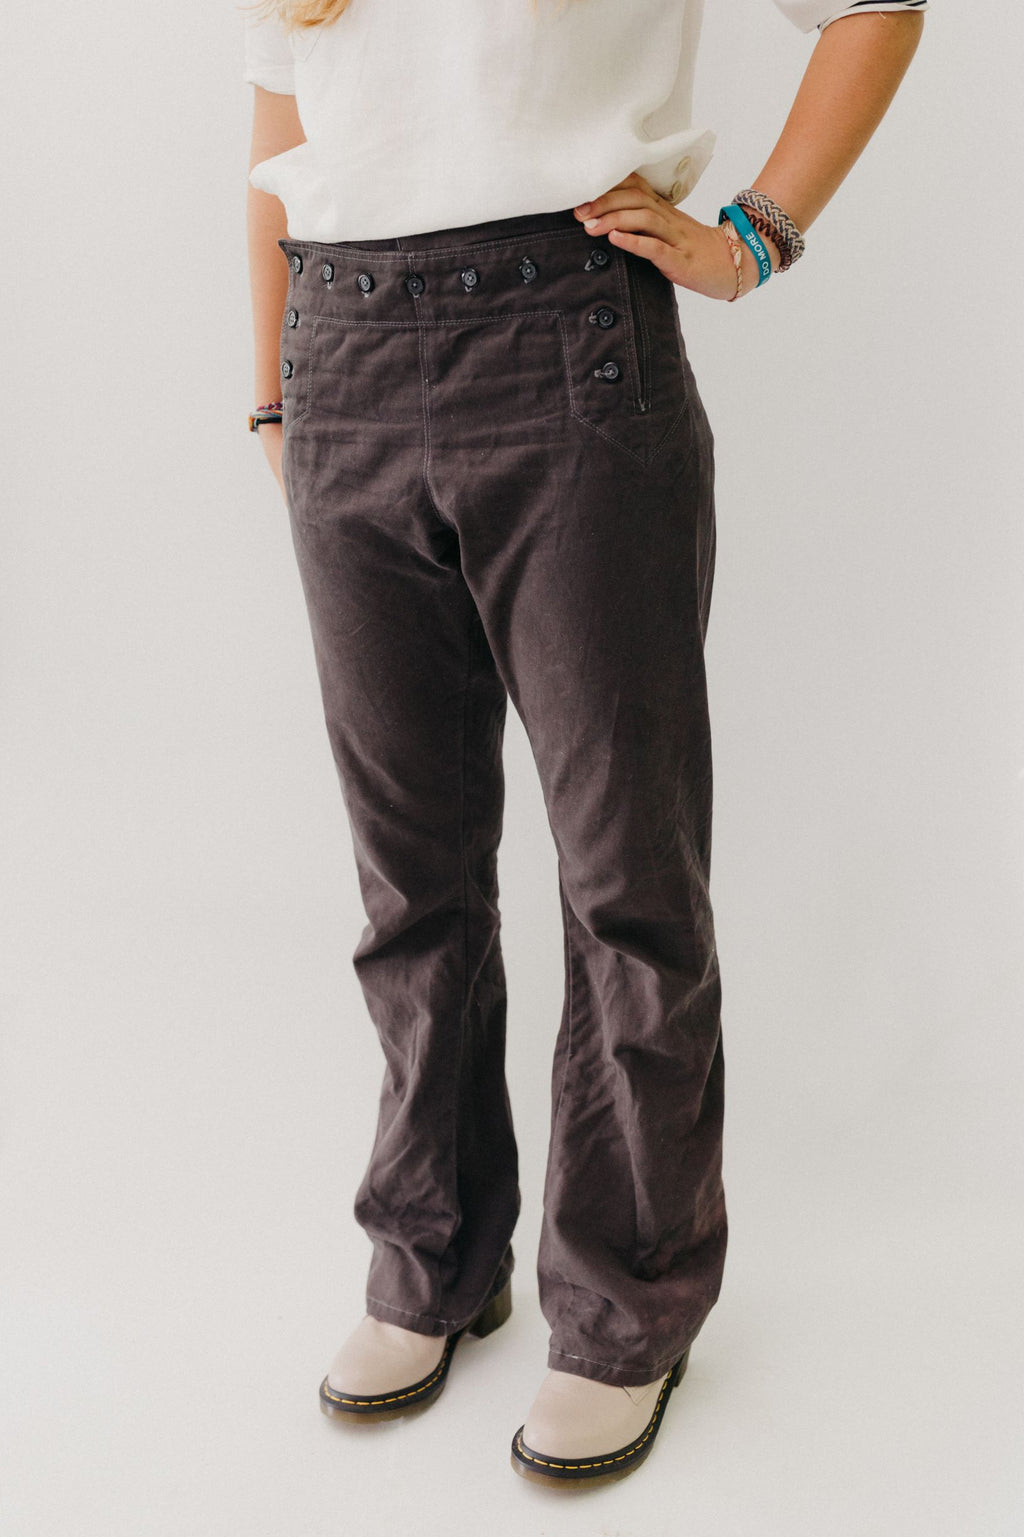 Woman wearing sailor pants made of grey twill.